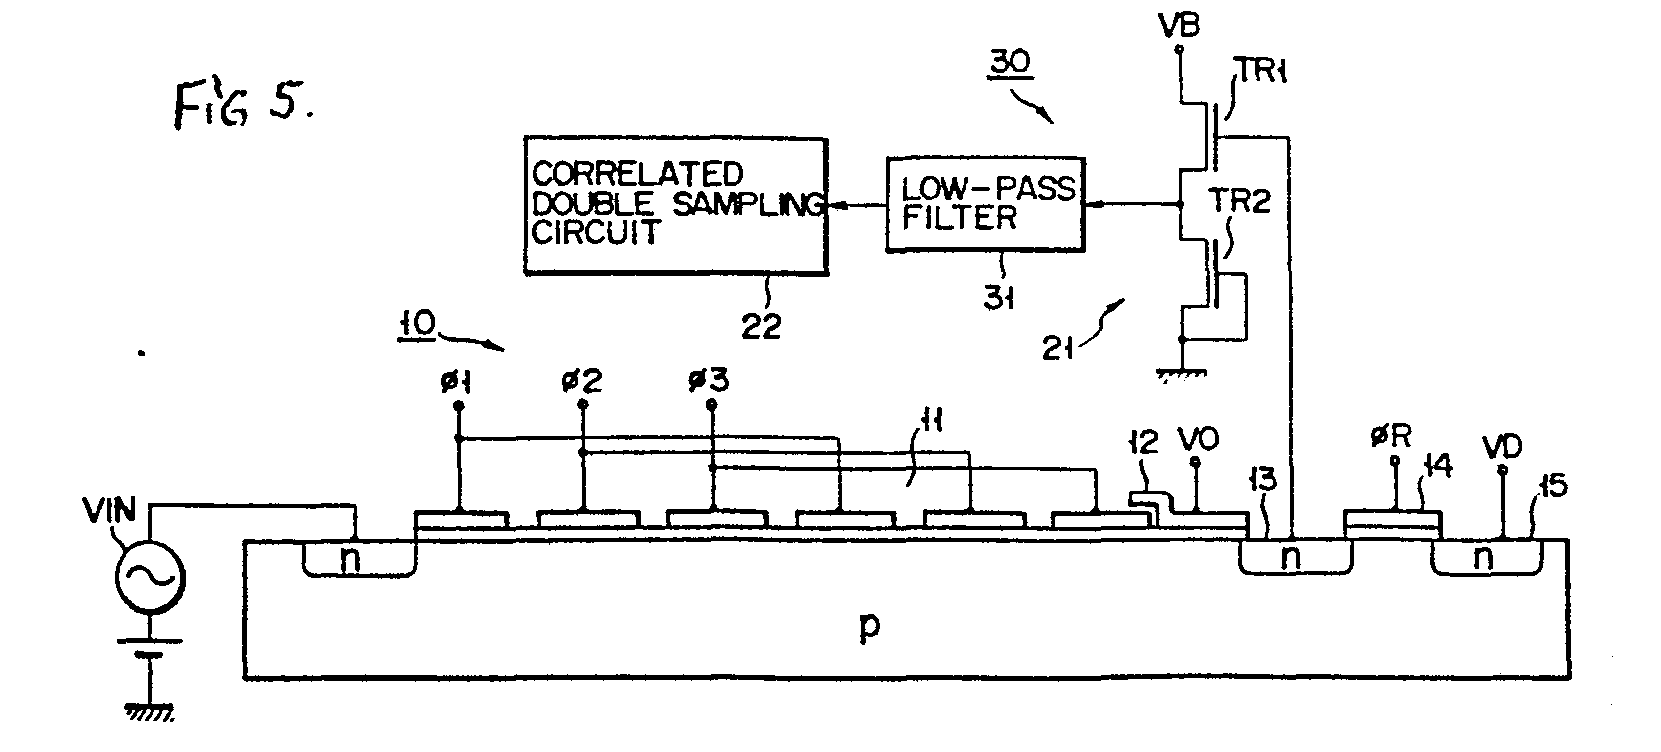 Ccd Output Signal Generating Circuit Patent 0172474 Lowpass Filter Diagram Basiccircuit 21 And The Correlated Double Sampling 22 Acts To An From Before Supplying